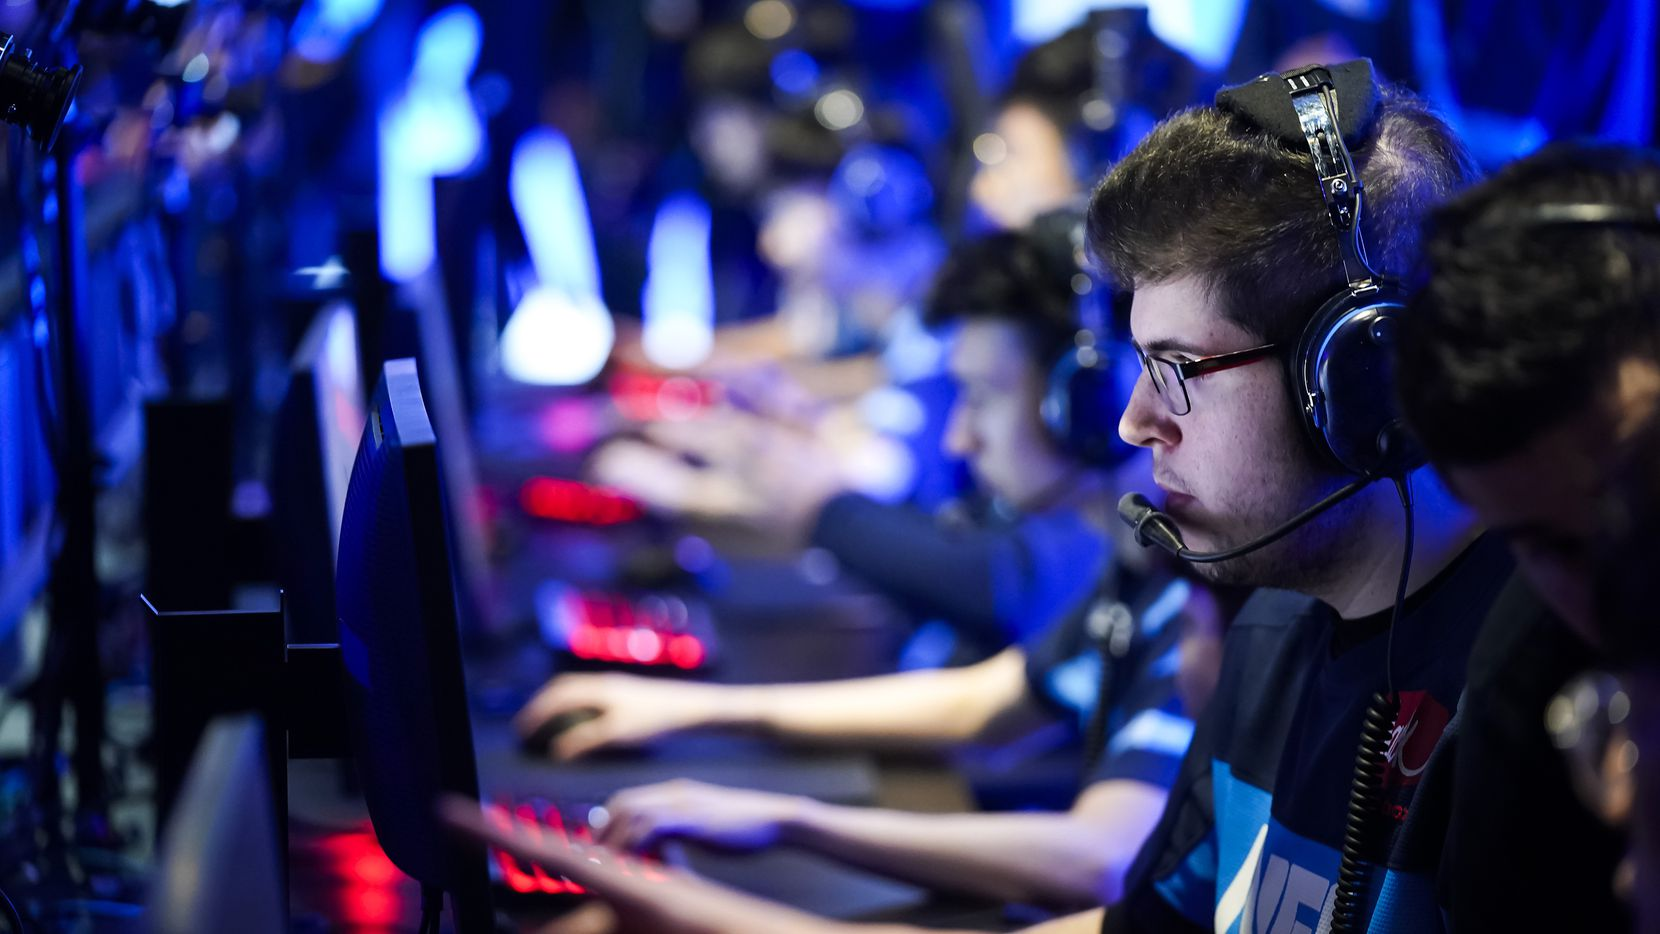 William ÒCrimzoÓ Hernandez of the Dallas Fuel prepares for the start of a Overwatch League match against the Los Angeles Valiant at the Arlington Esports Stadium on Saturday, Feb. 8, 2020, in Arlington.